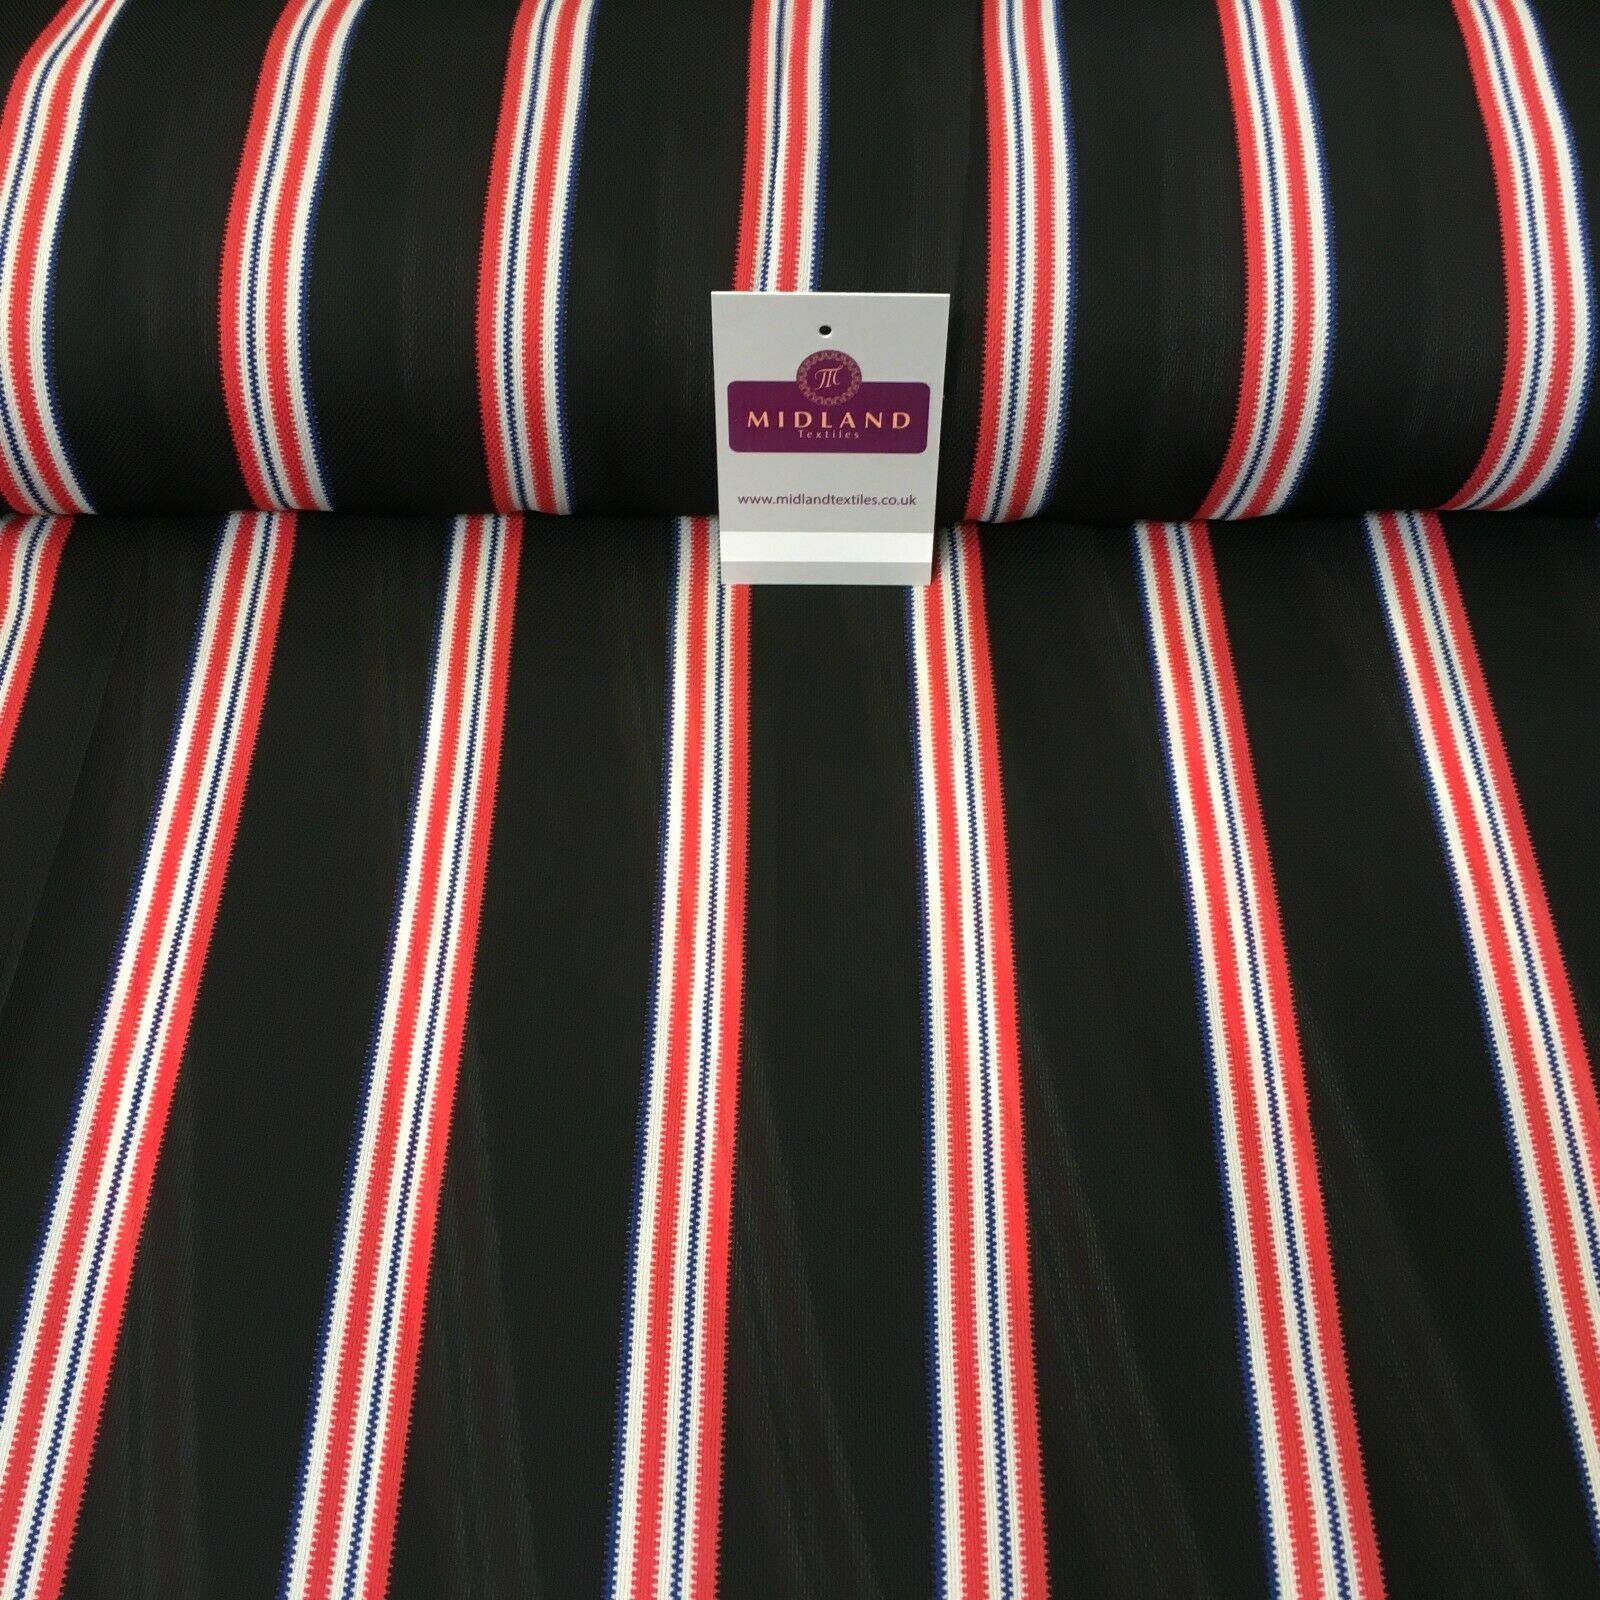 Black & Coral Stripped soft Georgette twist voile Dress Fabric 147cm MK1185-8